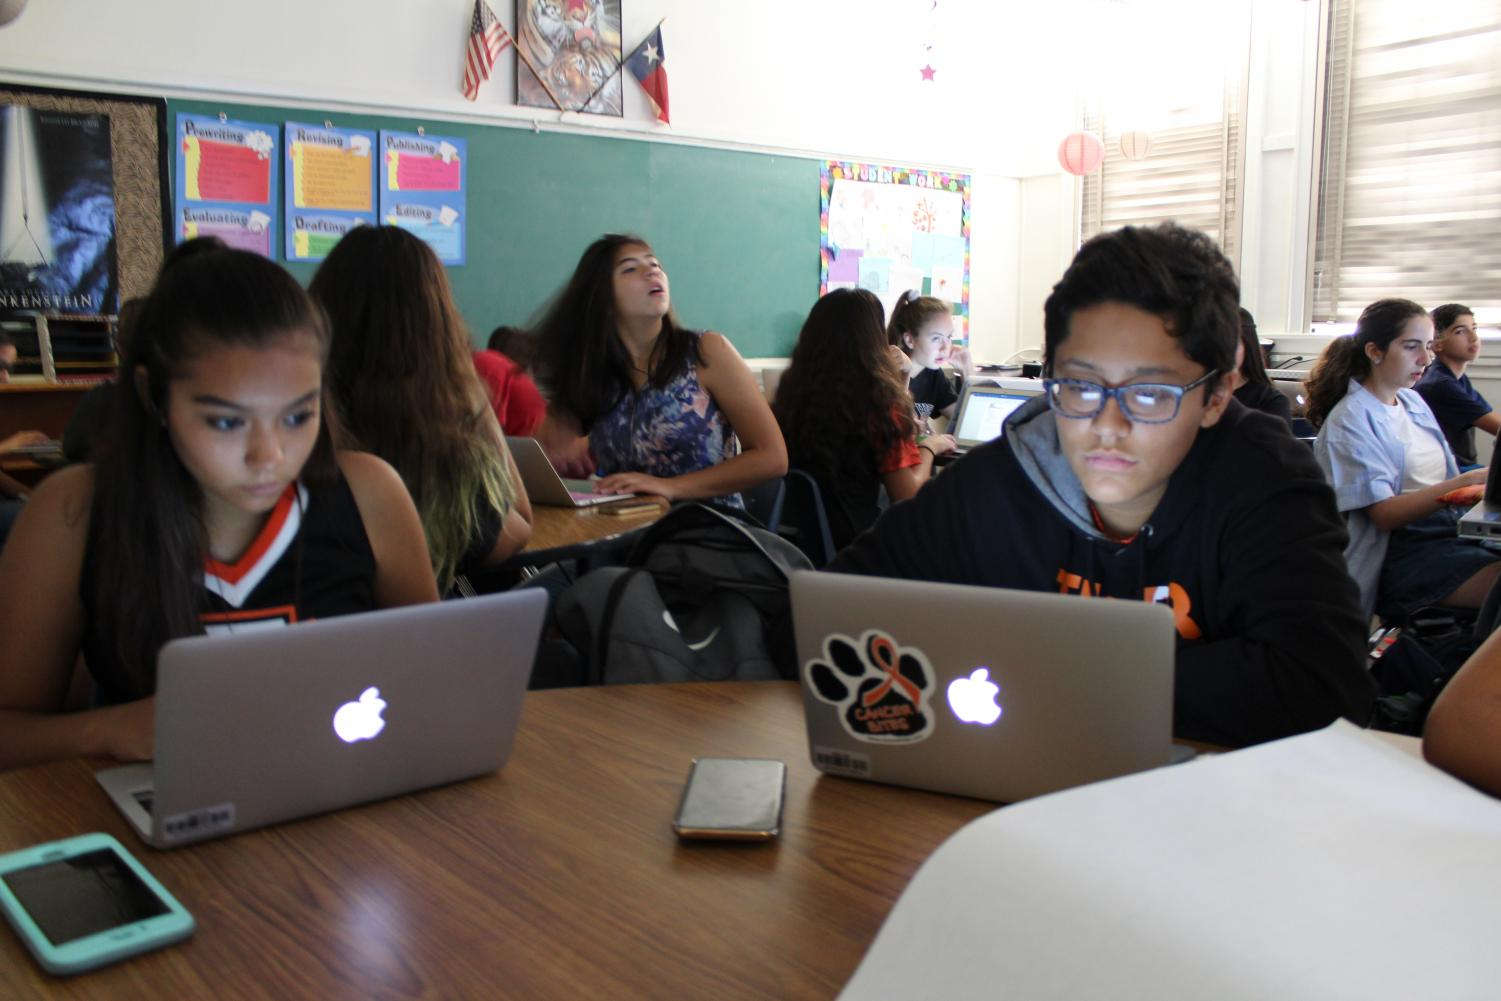 Freshman across EPISD received Apple MacBooks an initiative taken to help modernize the classroom.(Photo by Natalia Lowe)